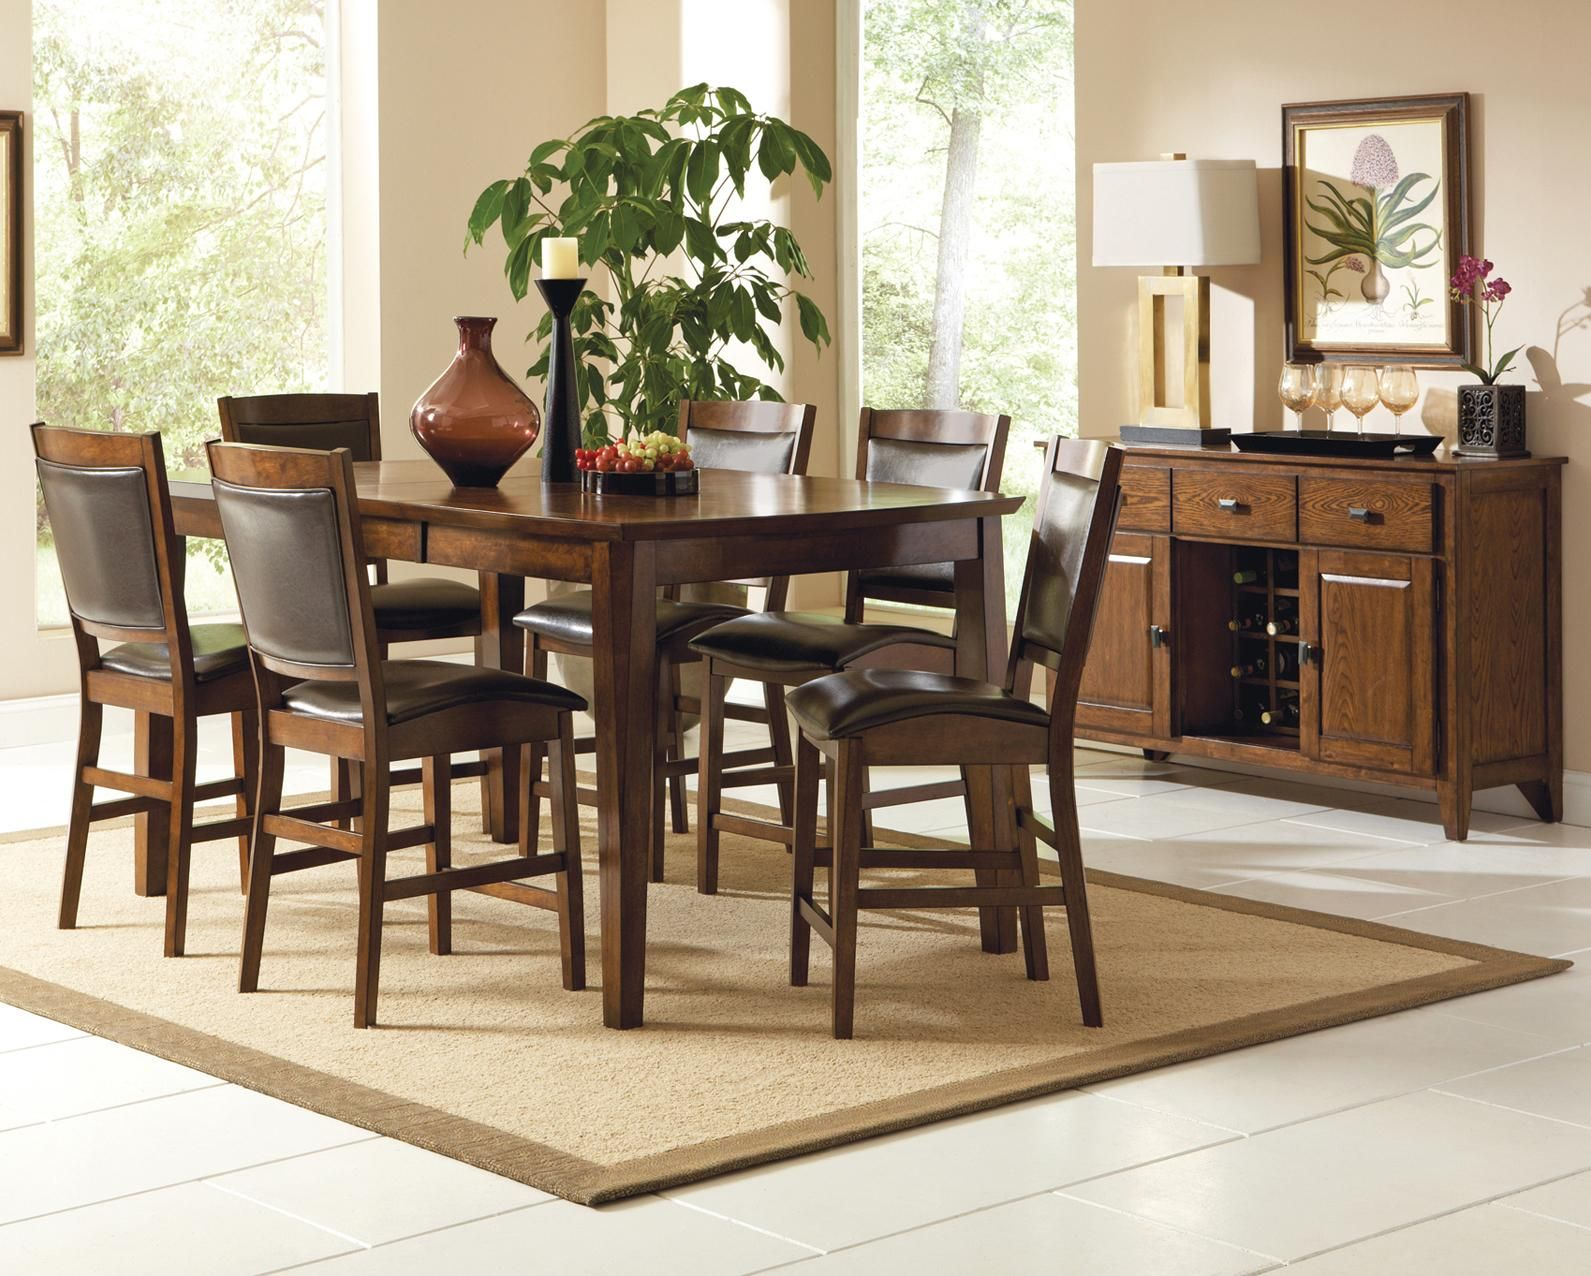 dimensions set standard height round table with leaf counter of medium chair dining size under for sets piece room